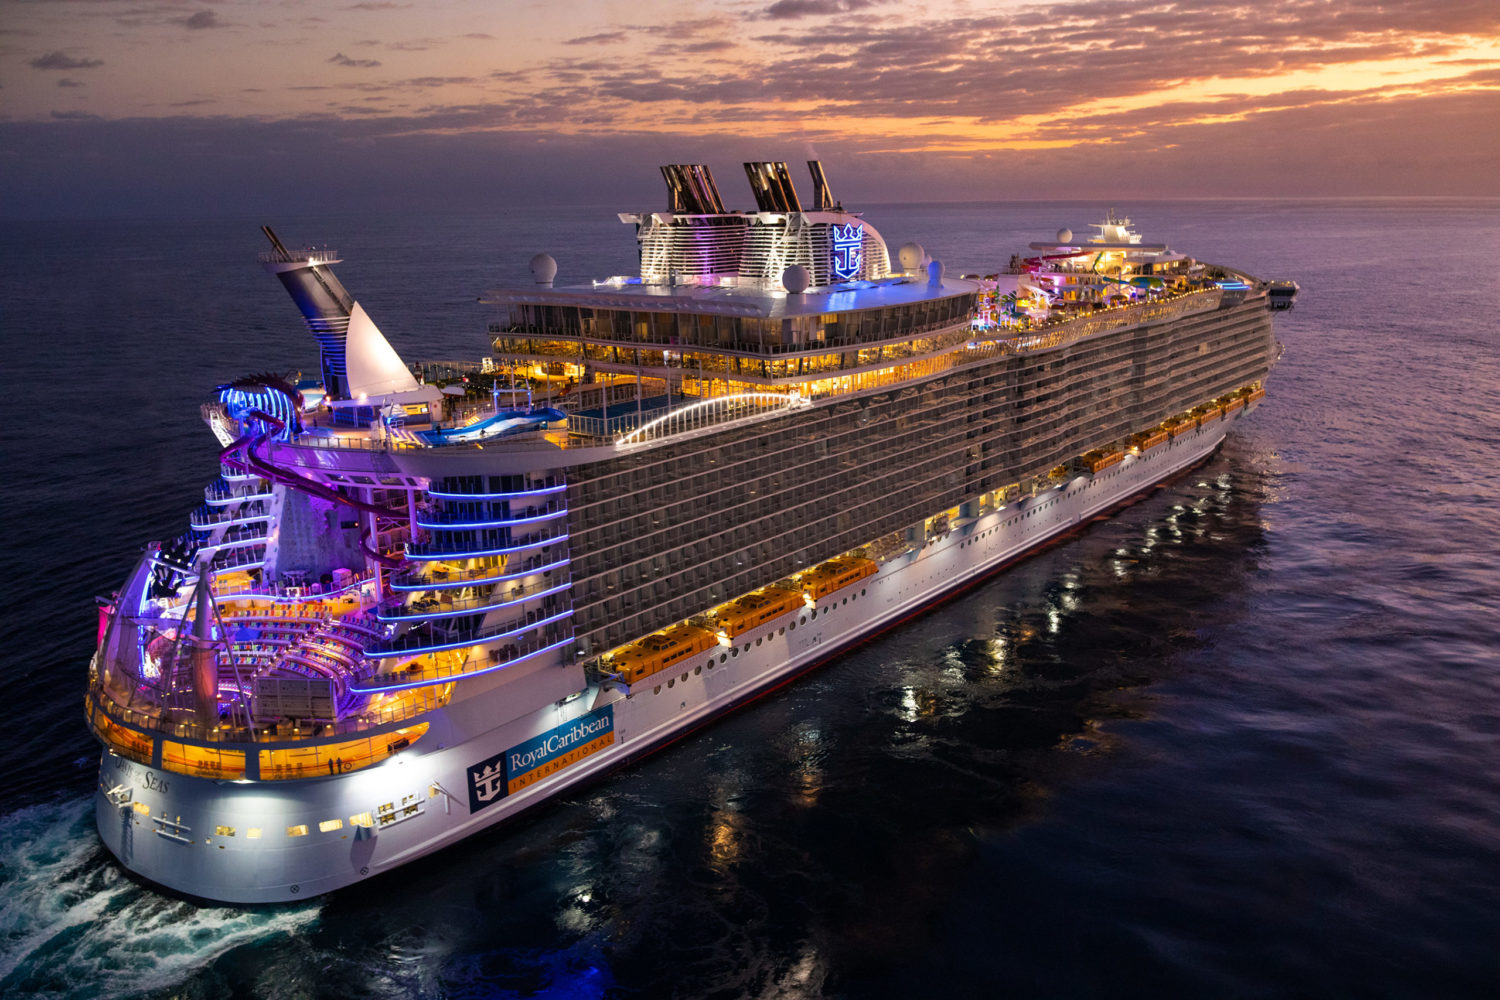 Royal Caribbean Completes Their Largest Cruise Ship Transformation